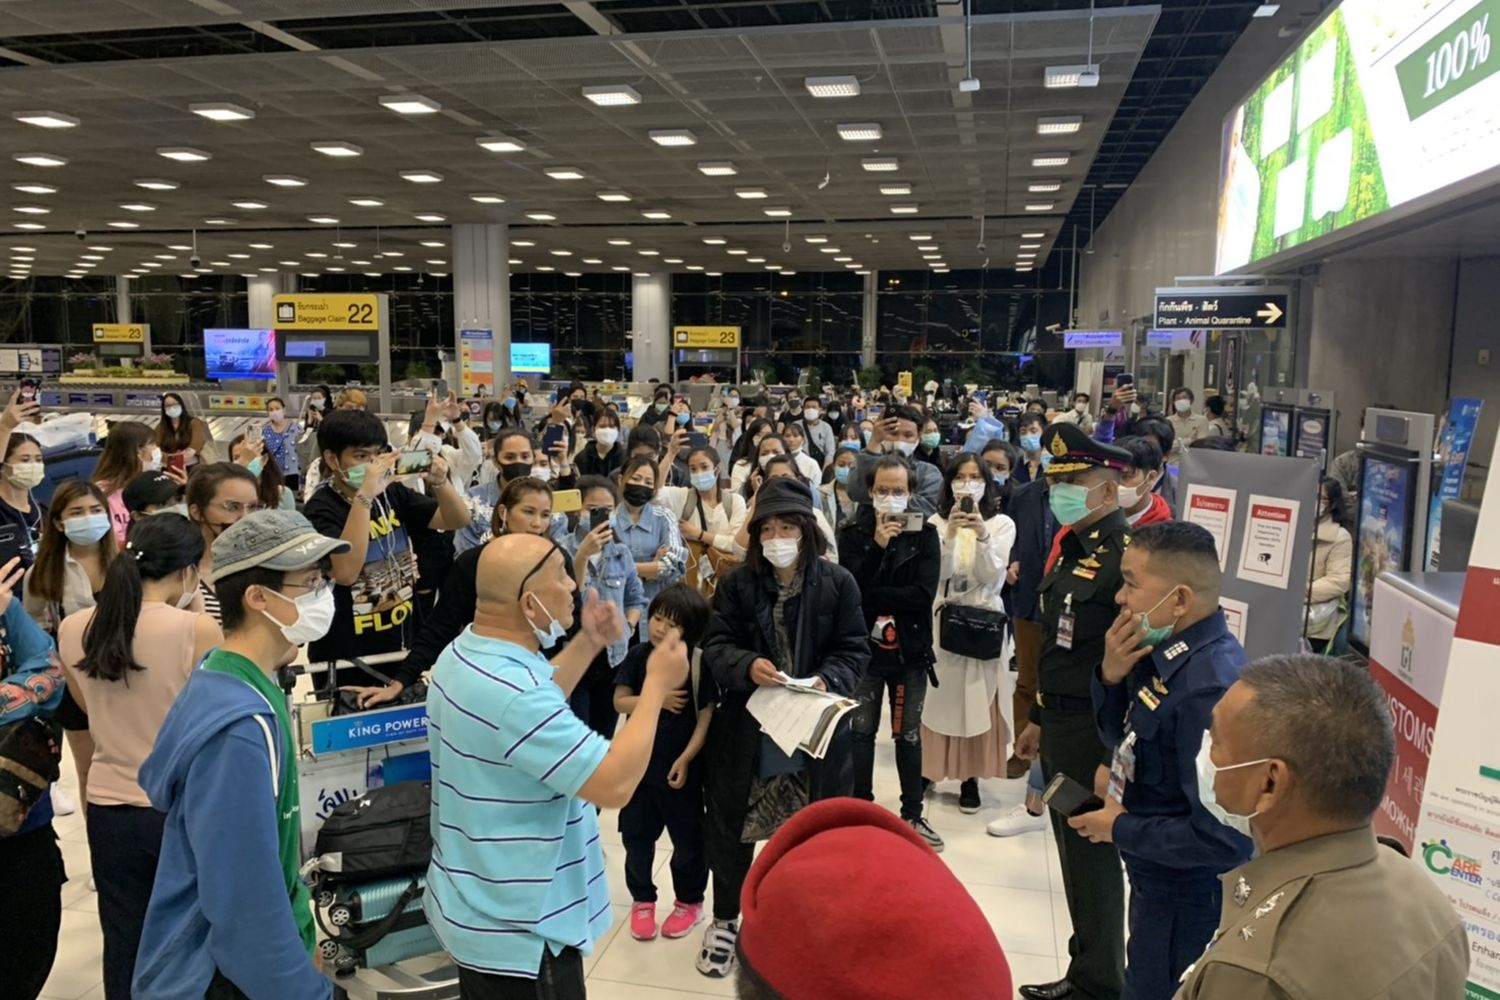 Officials talk to confused Thai passengers after they landed at Suvarnabhumi airport on Friday night. (Photo supplied by Mongkol Bangprapa)